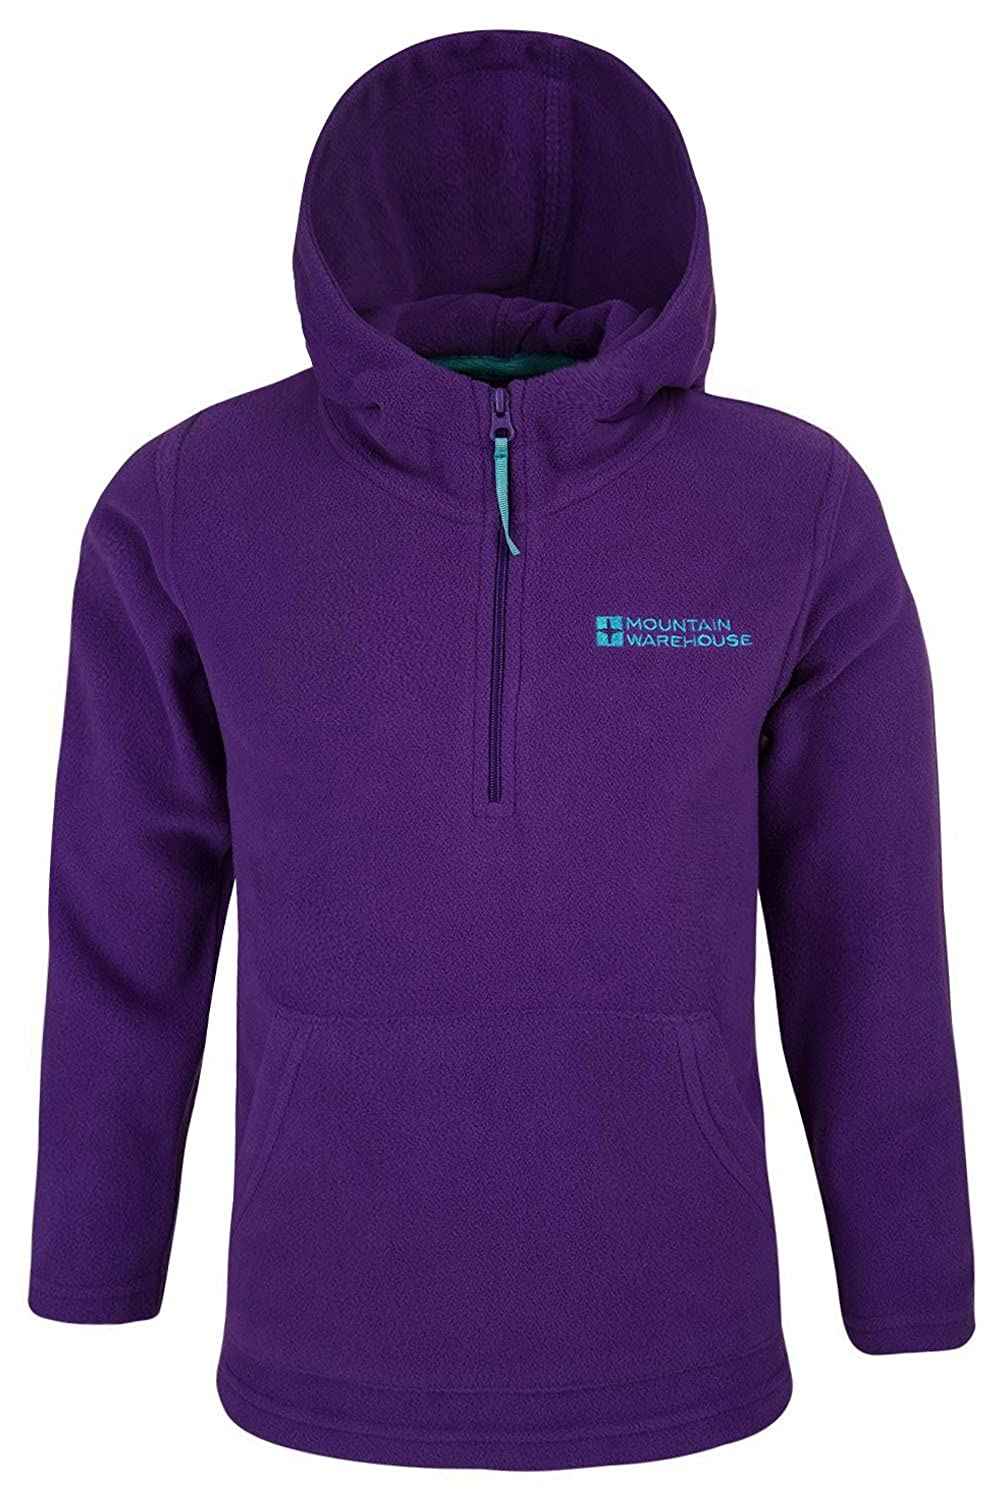 Mountain Warehouse Camber Mikrovlies-Kapuzenpulli für Kinder